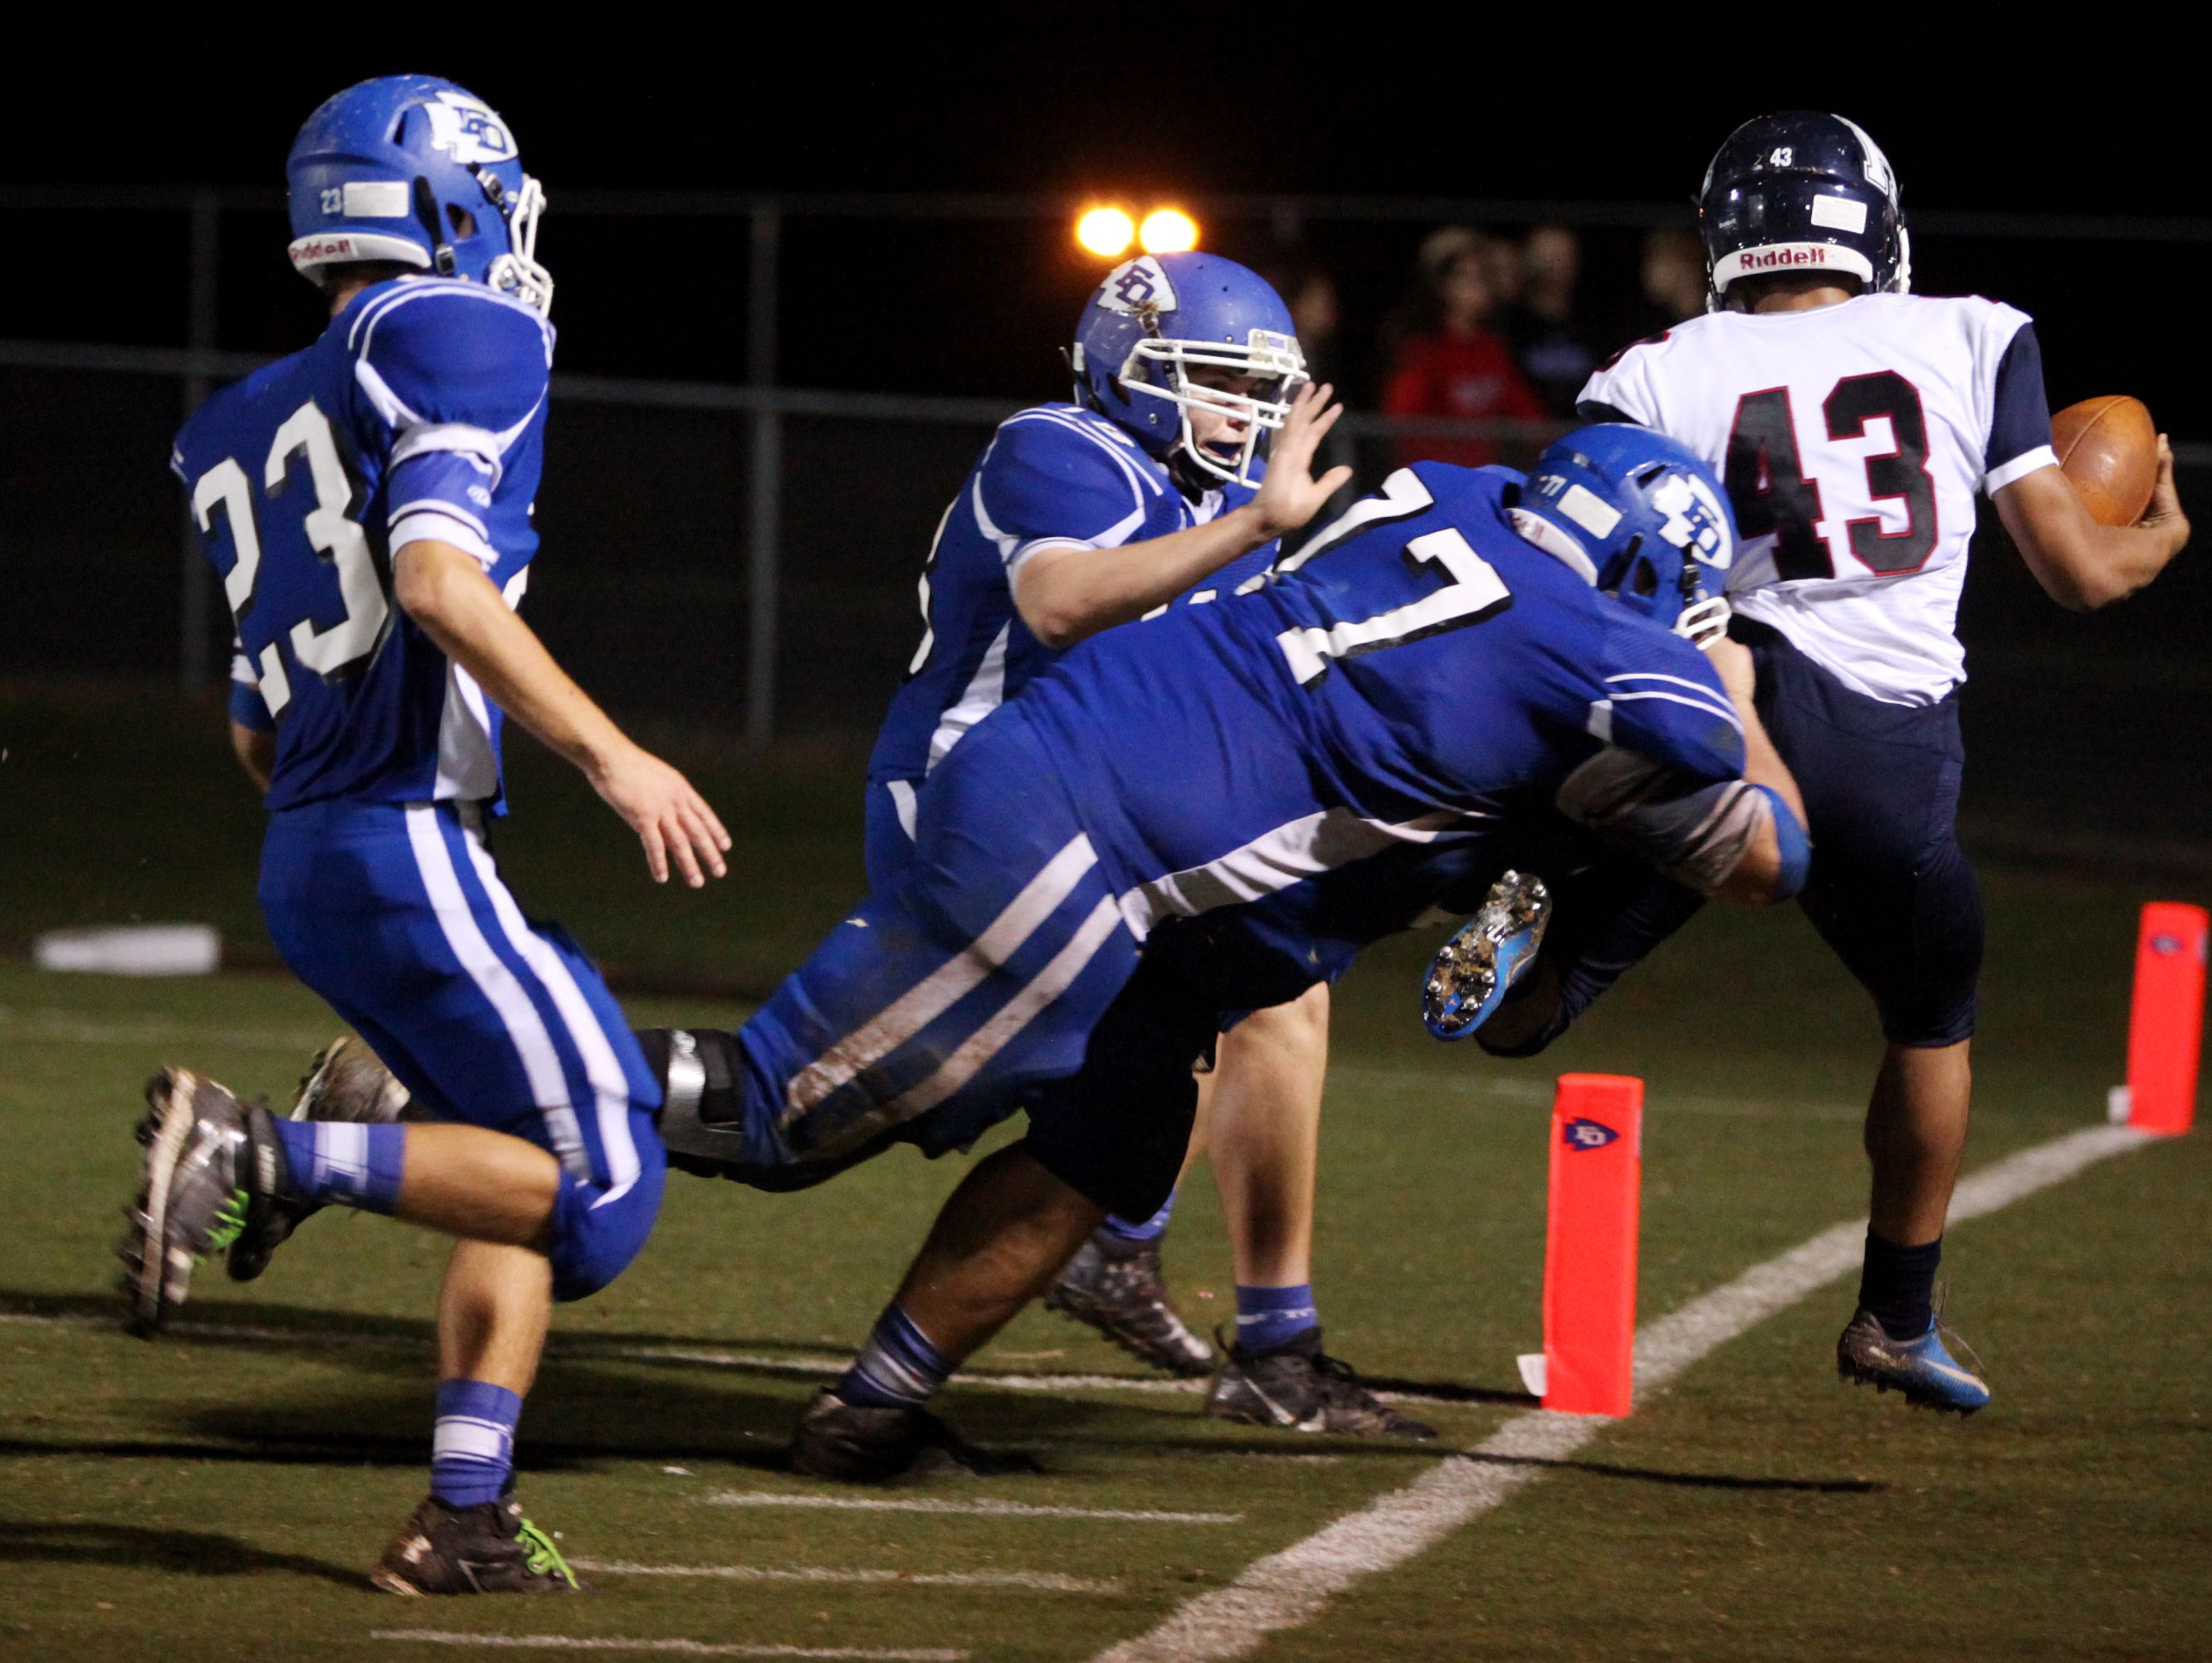 Fort Defiance's Dakota Morris, center, and Dillon Stickley push Harrisonburg's Roberto Gonzalez-Cavazos out-of-bounds as he tries for a two-point conversion during the second quarter of the game on Friday, Oct. 21, 2016 at Fort Defiance.